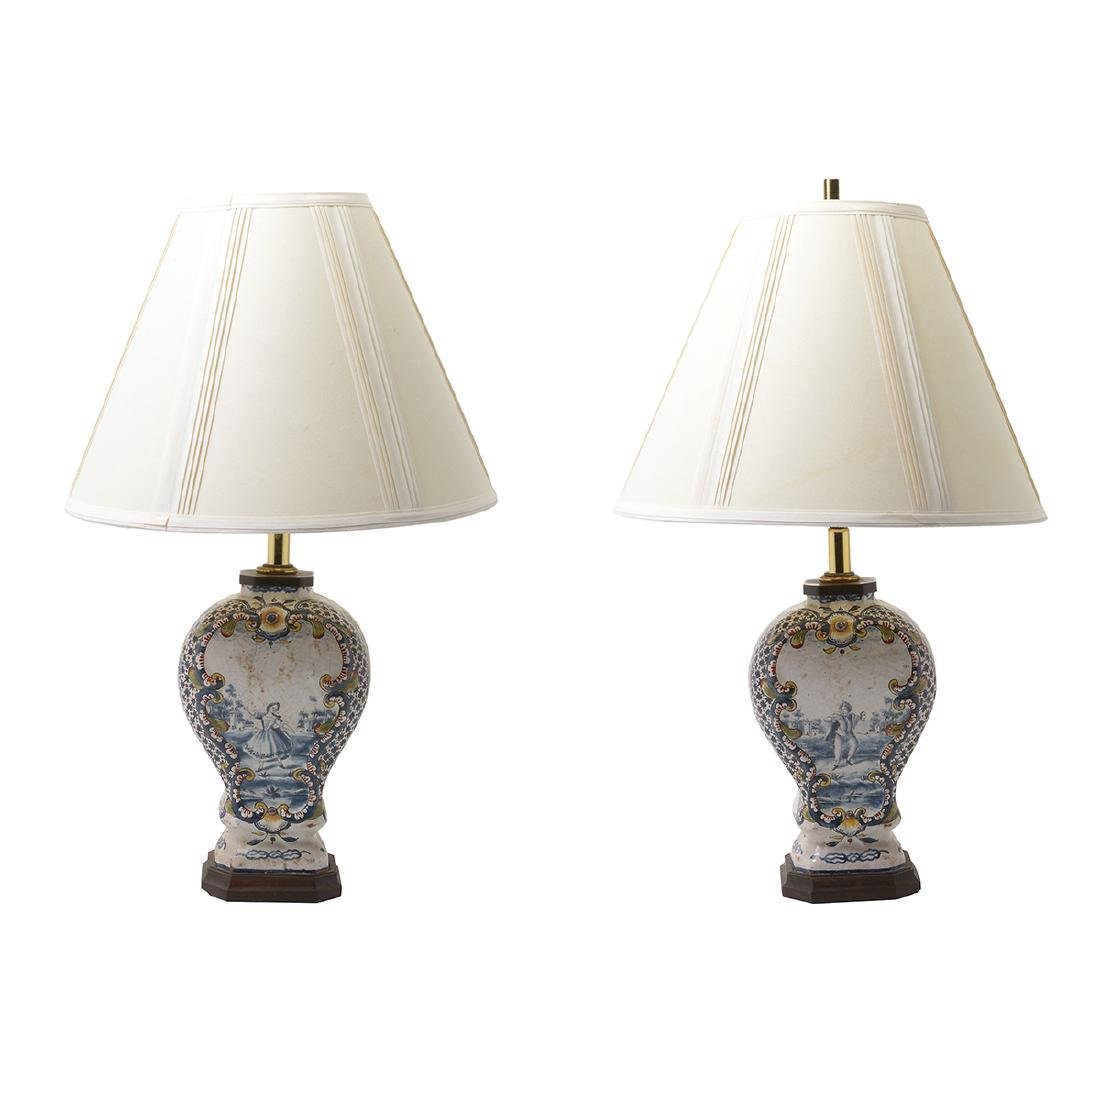 Pair of Delft Ware Jars Mounted as Lamps